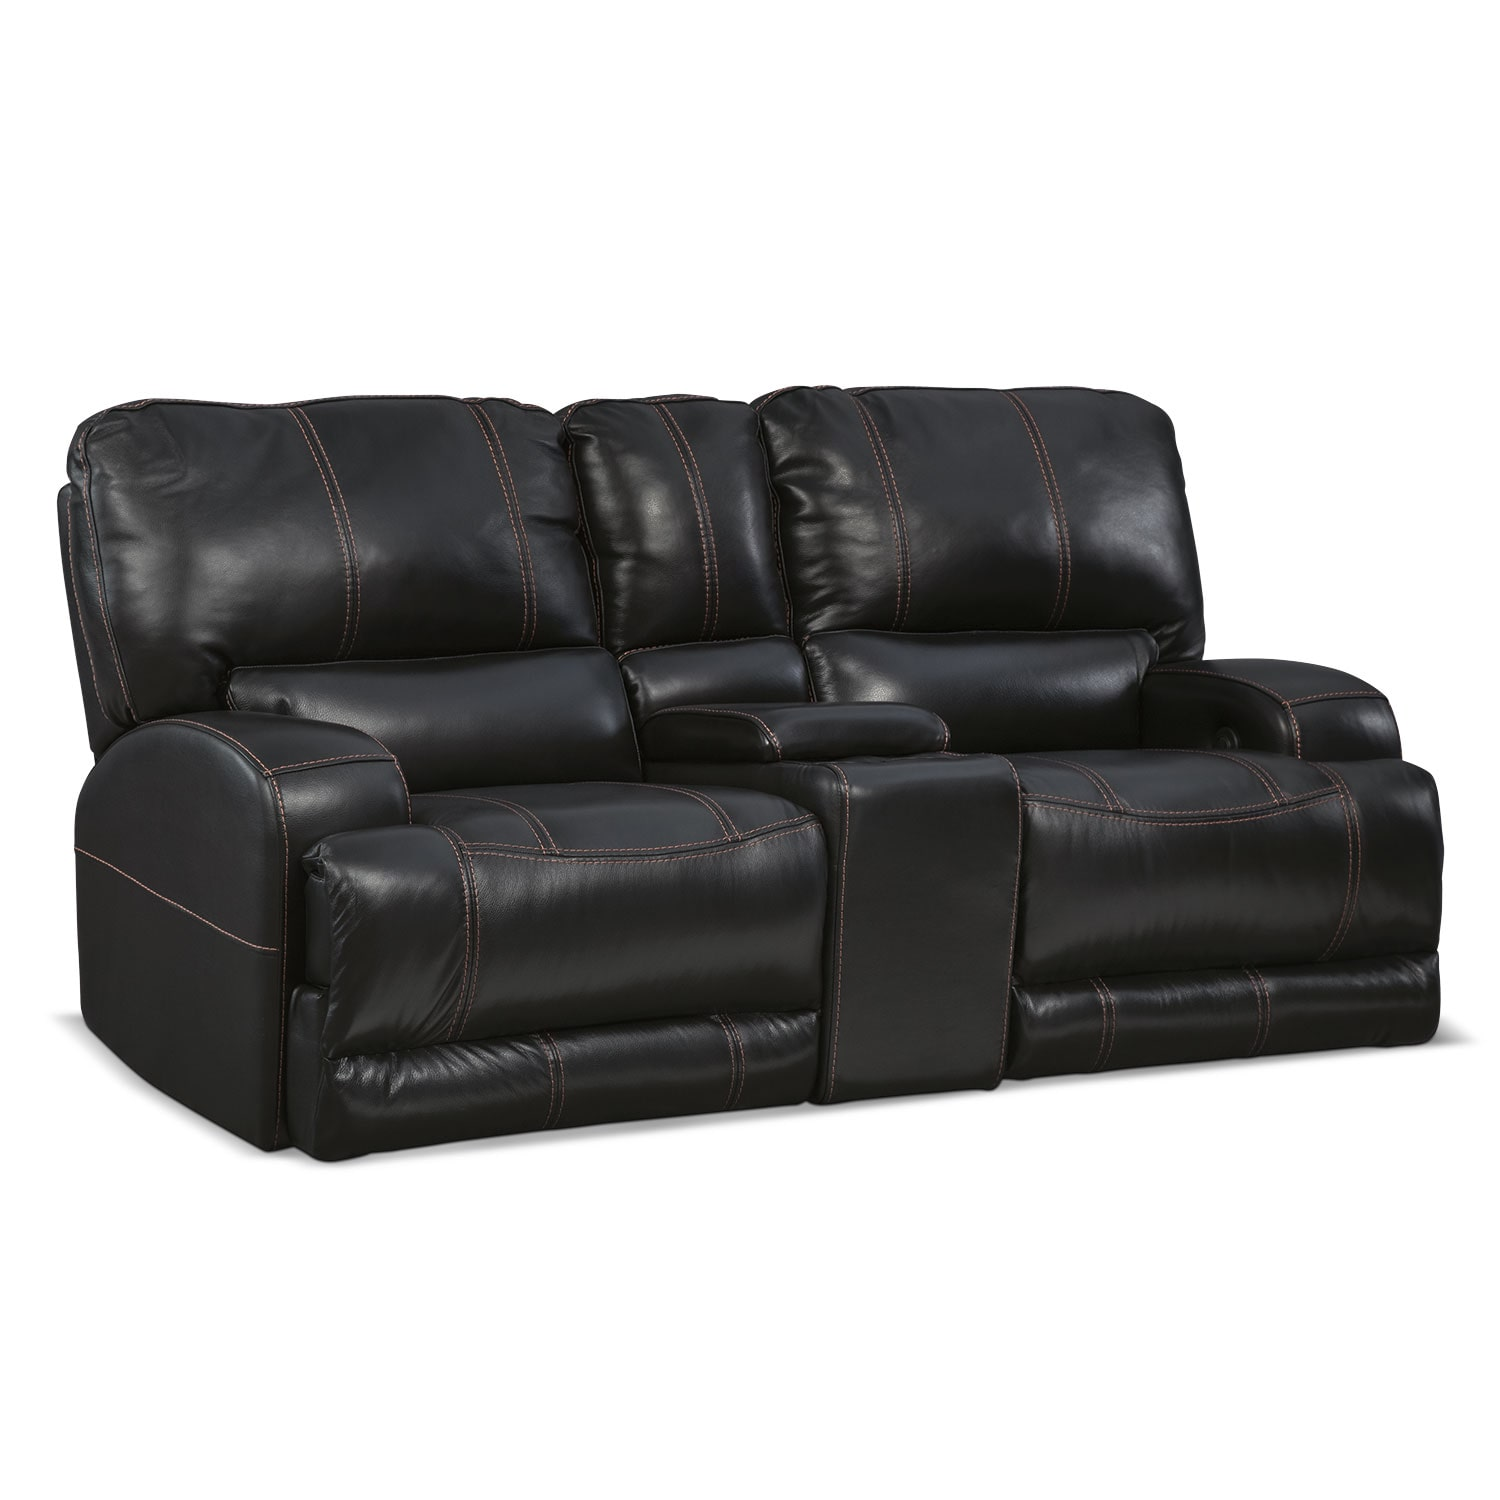 [Barton Black Power Reclining Loveseat w/ Console]